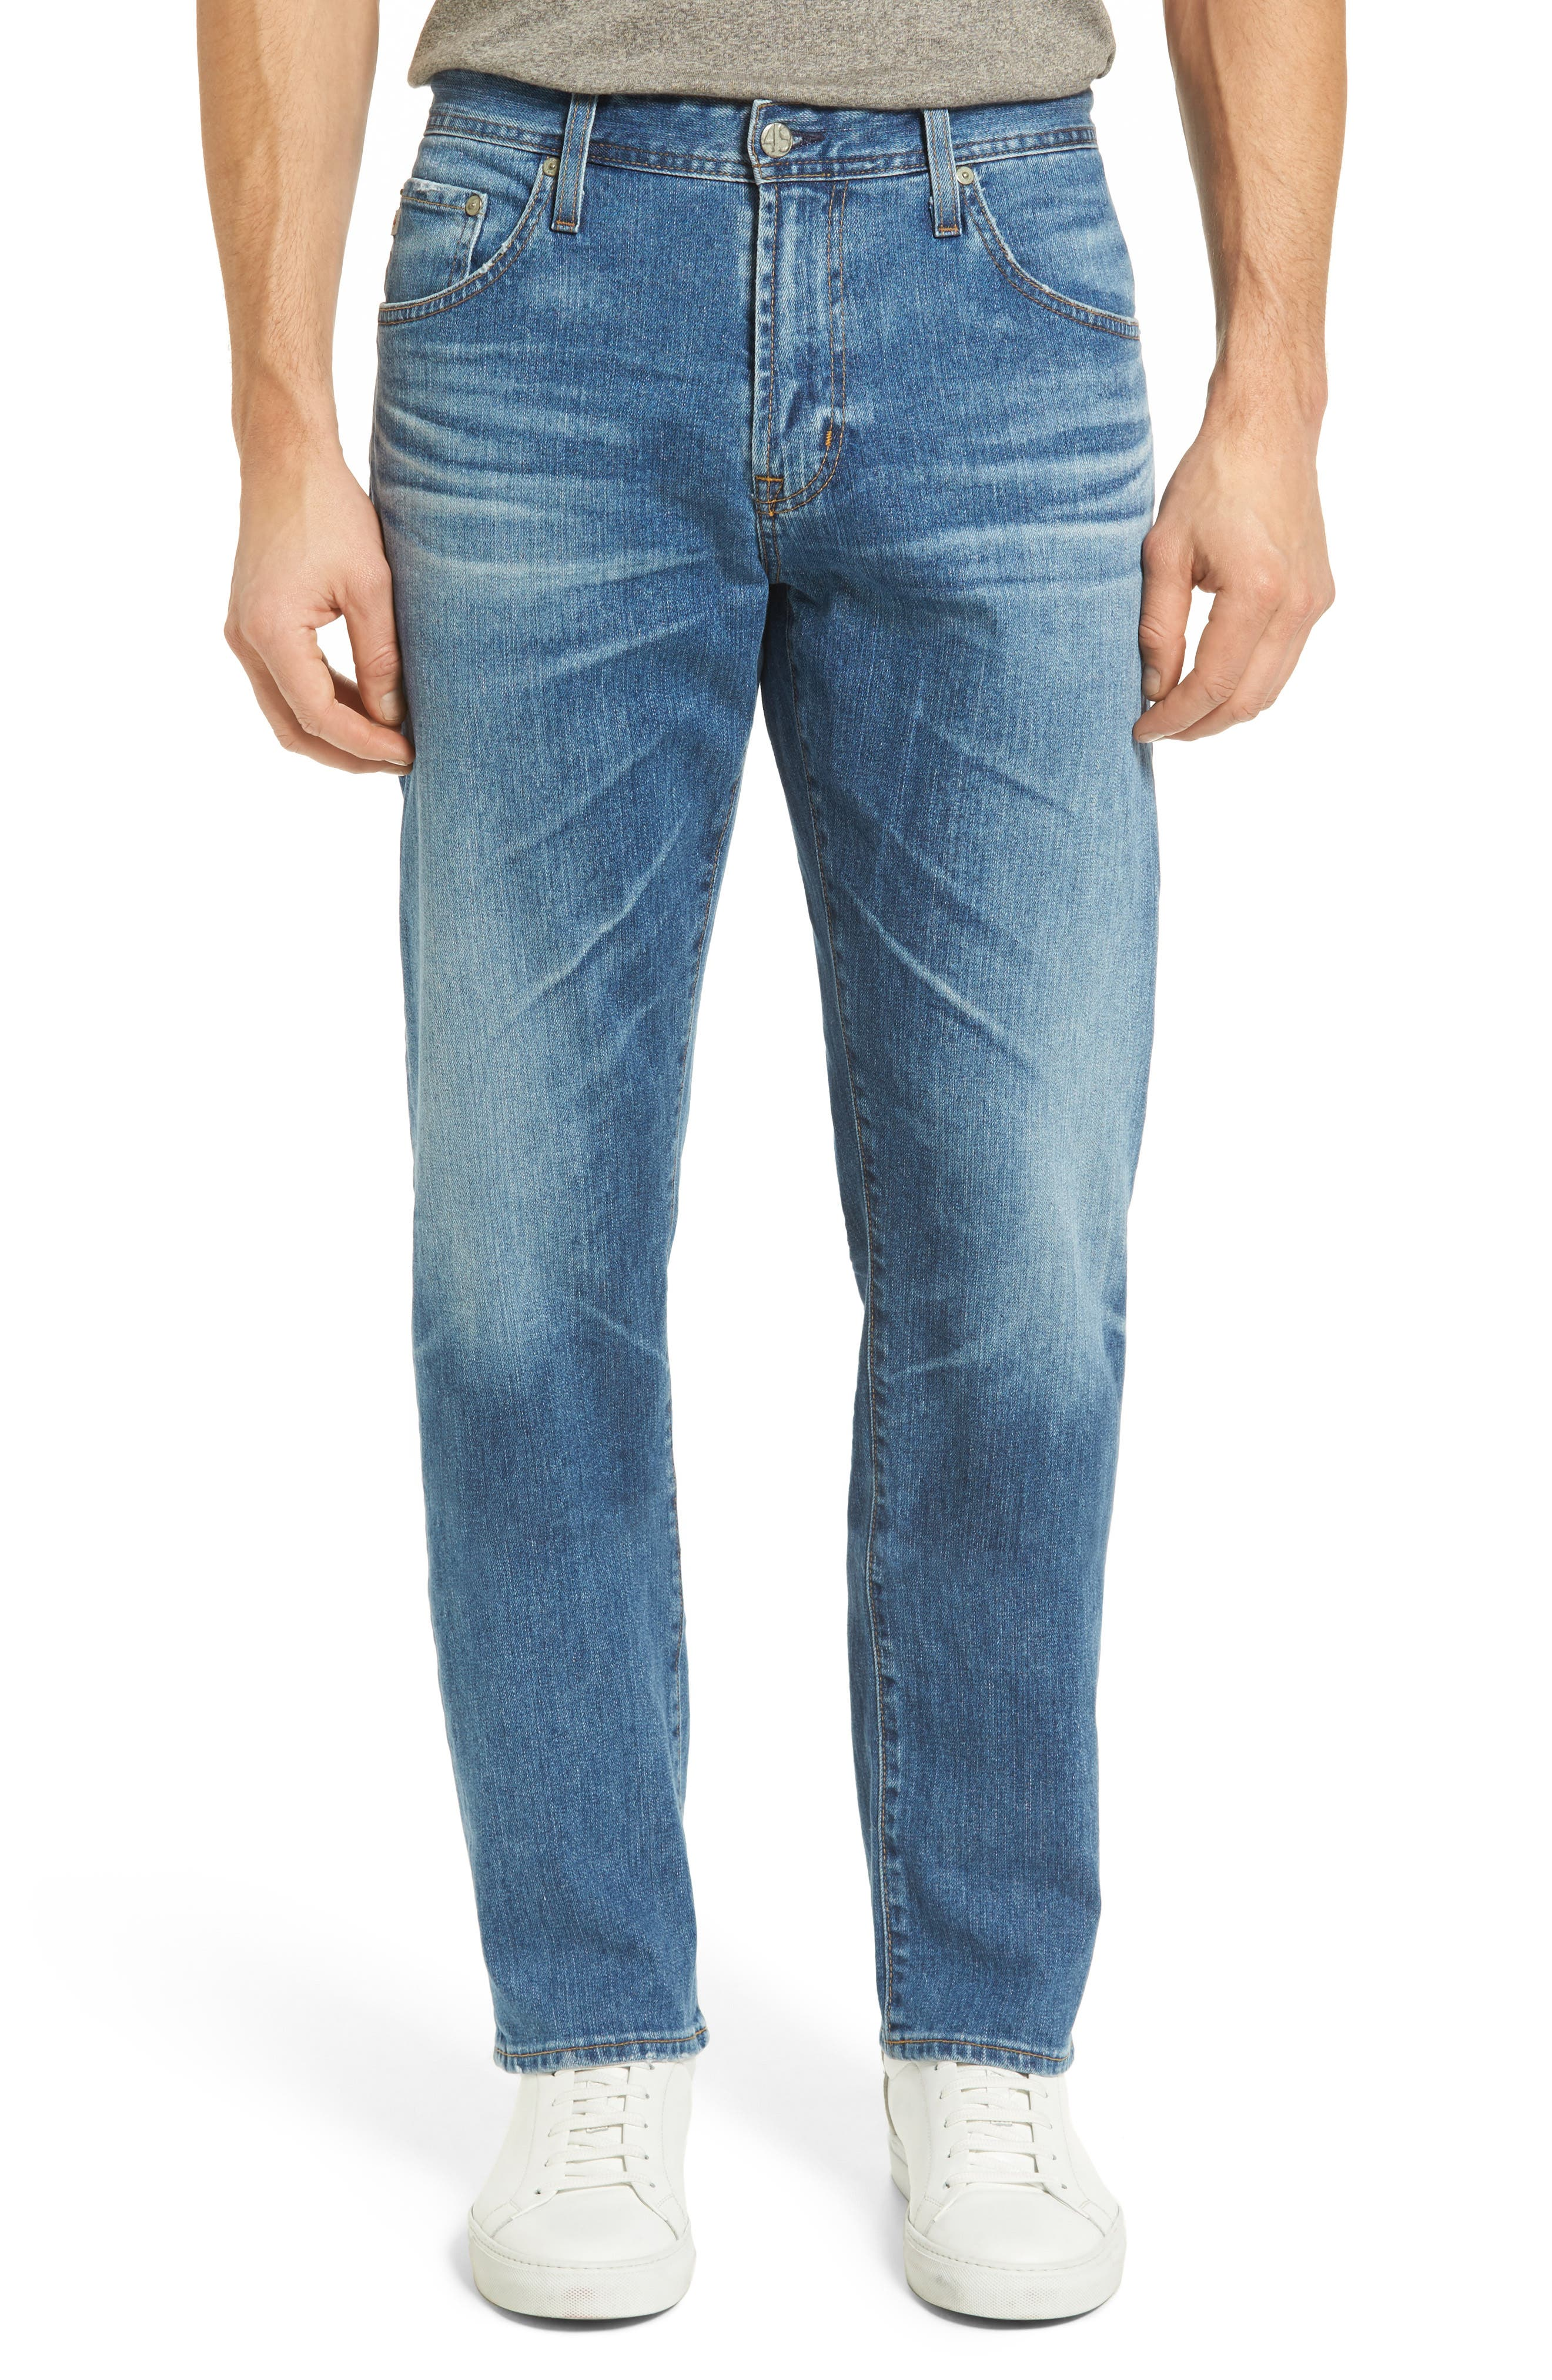 Ives Straight Leg Jeans,                             Main thumbnail 1, color,